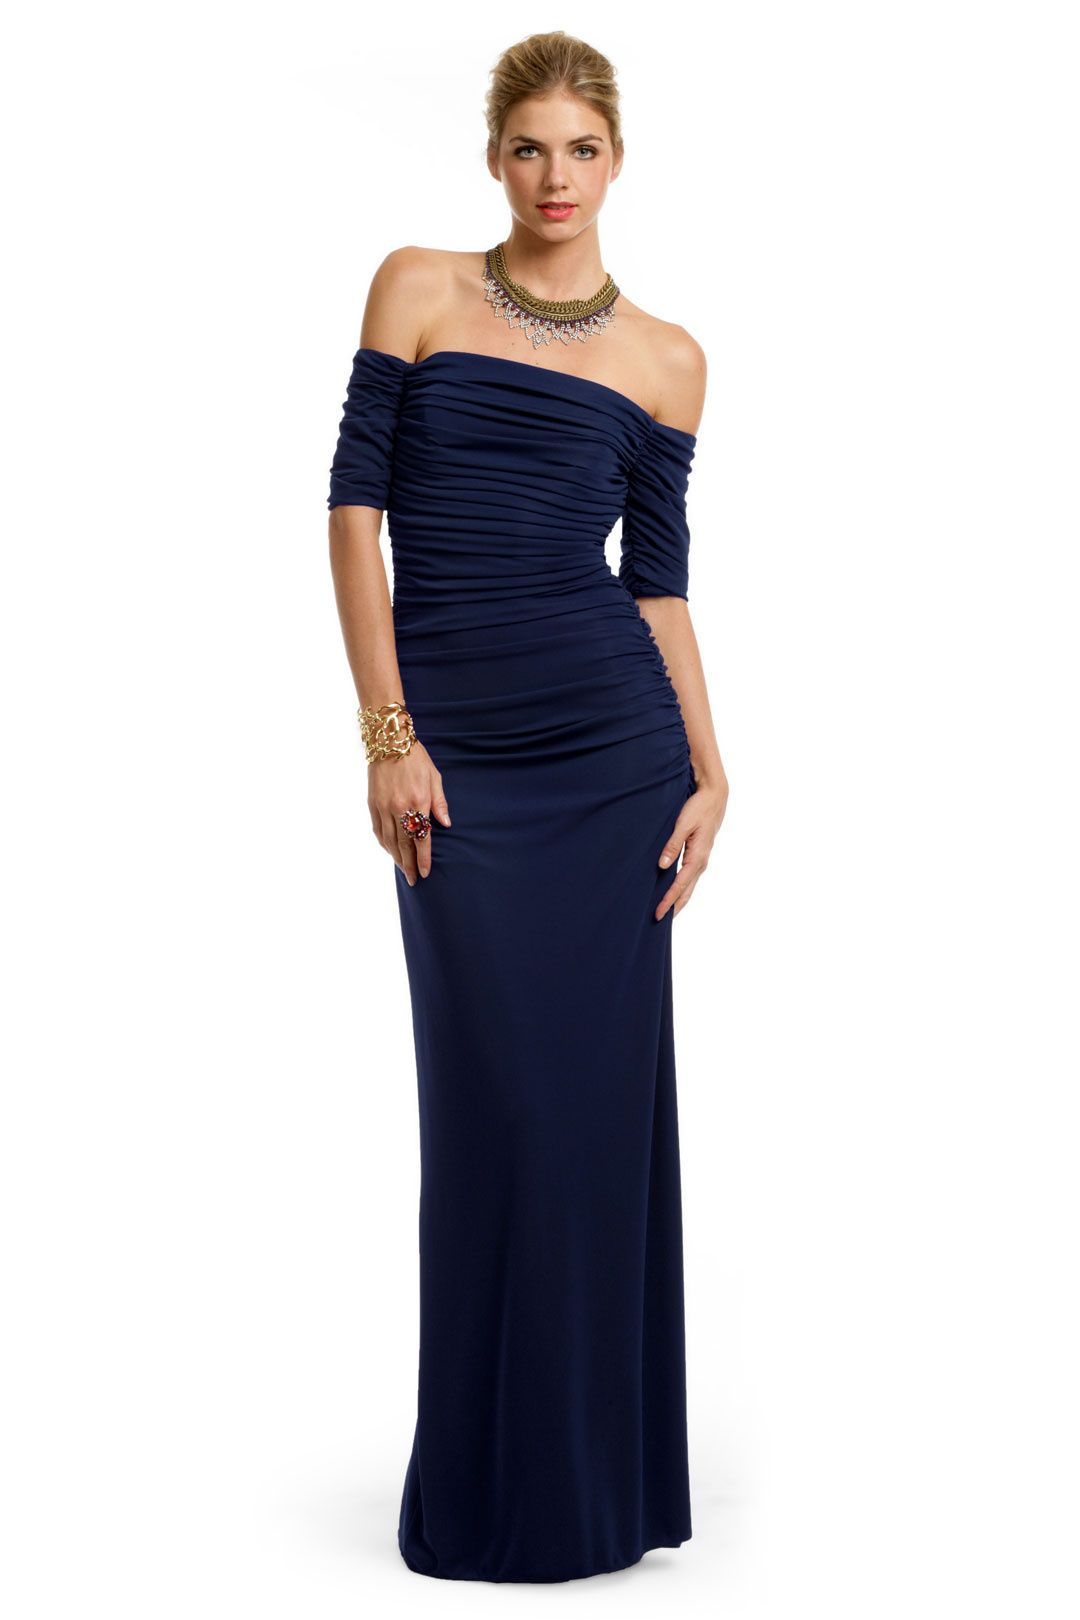 American Beauty Gown   Badgley mischka, Gowns and Ball gowns